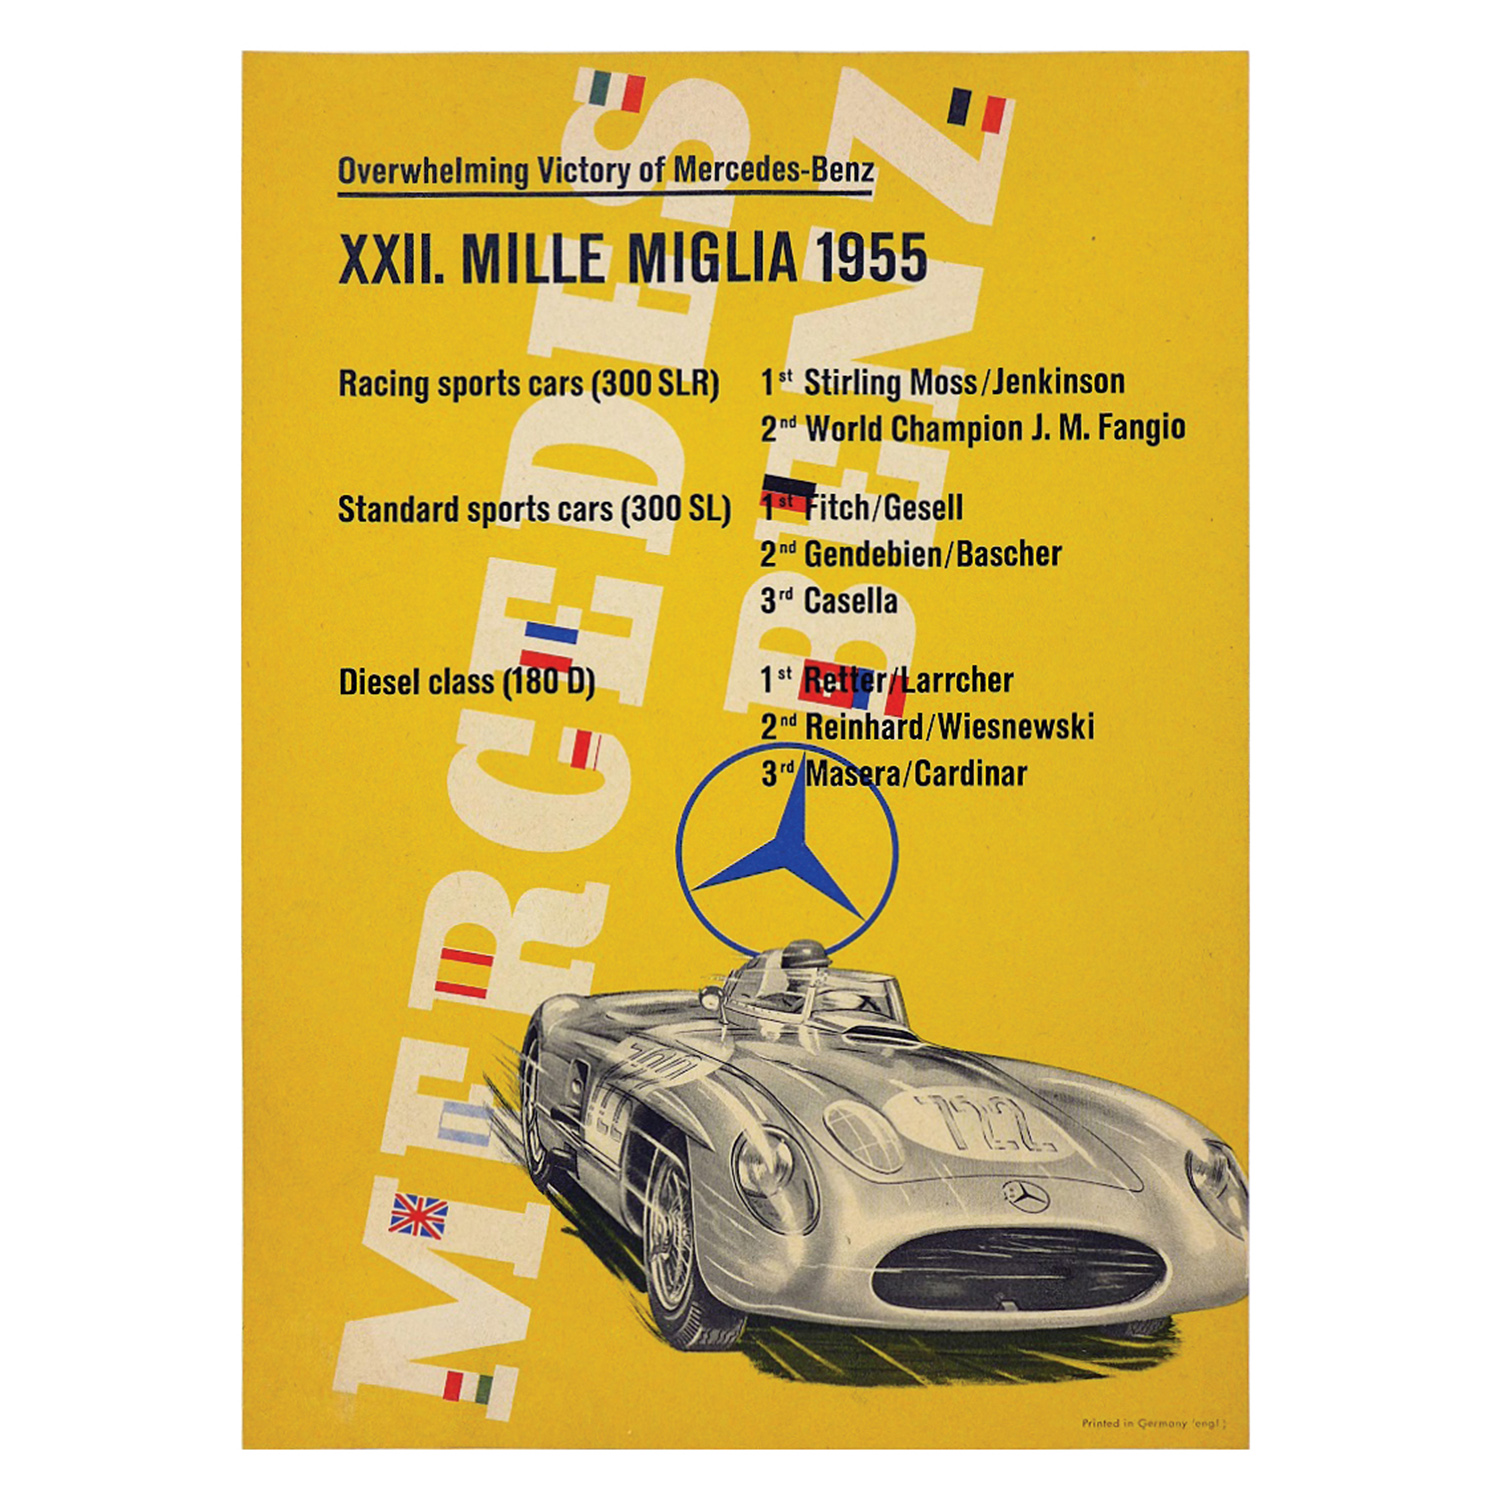 1955 Mille Miglia results poster